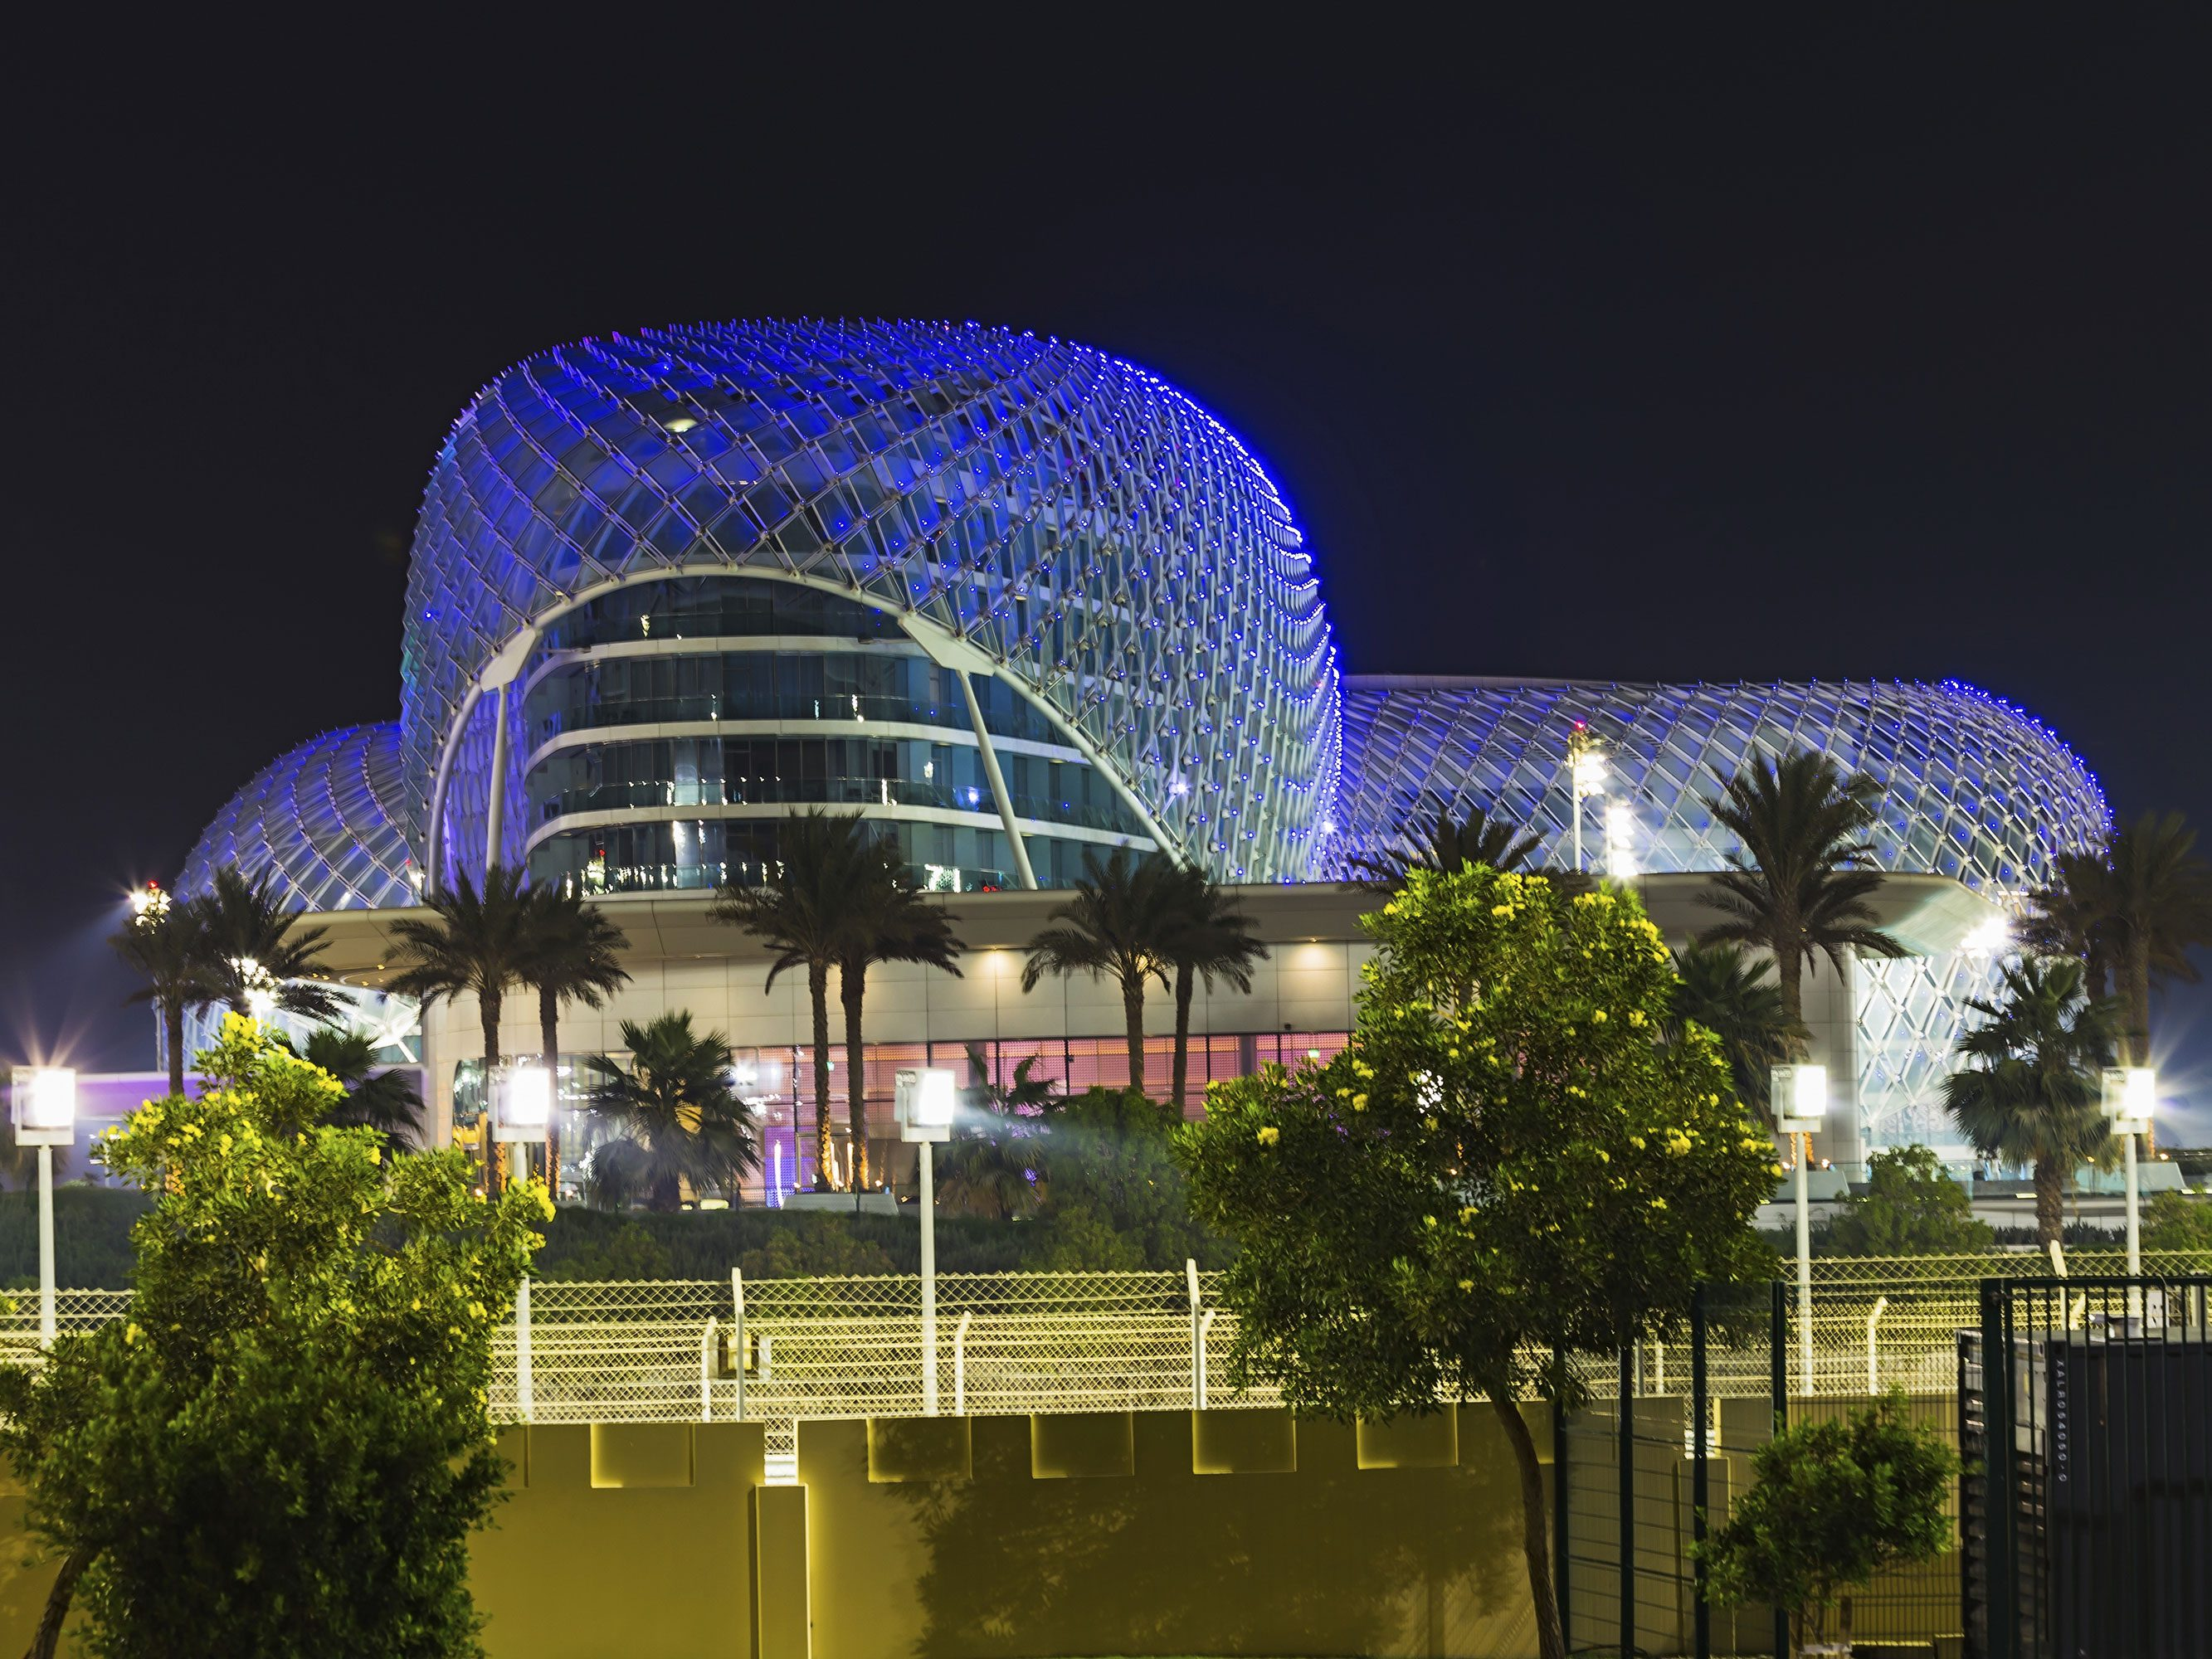 Riding the Formula Rossa in Abu Dhabi